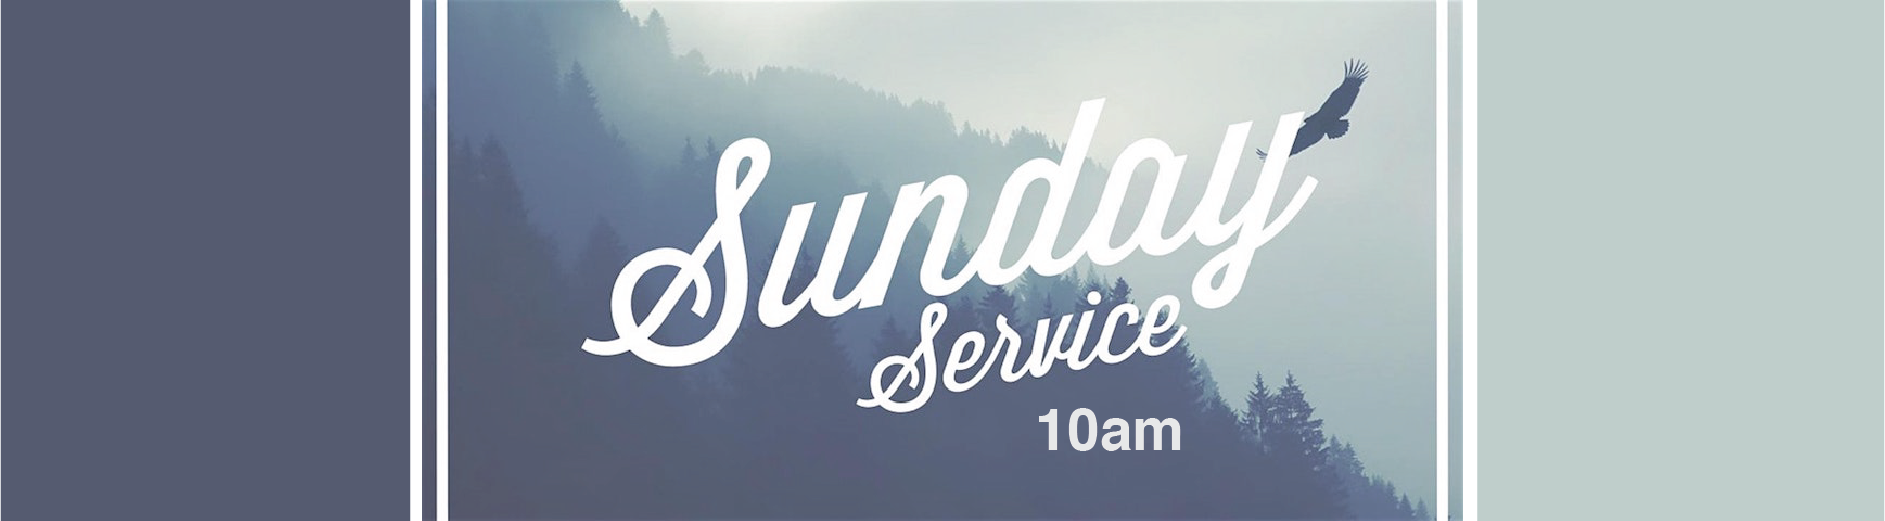 Sunday Worship banner